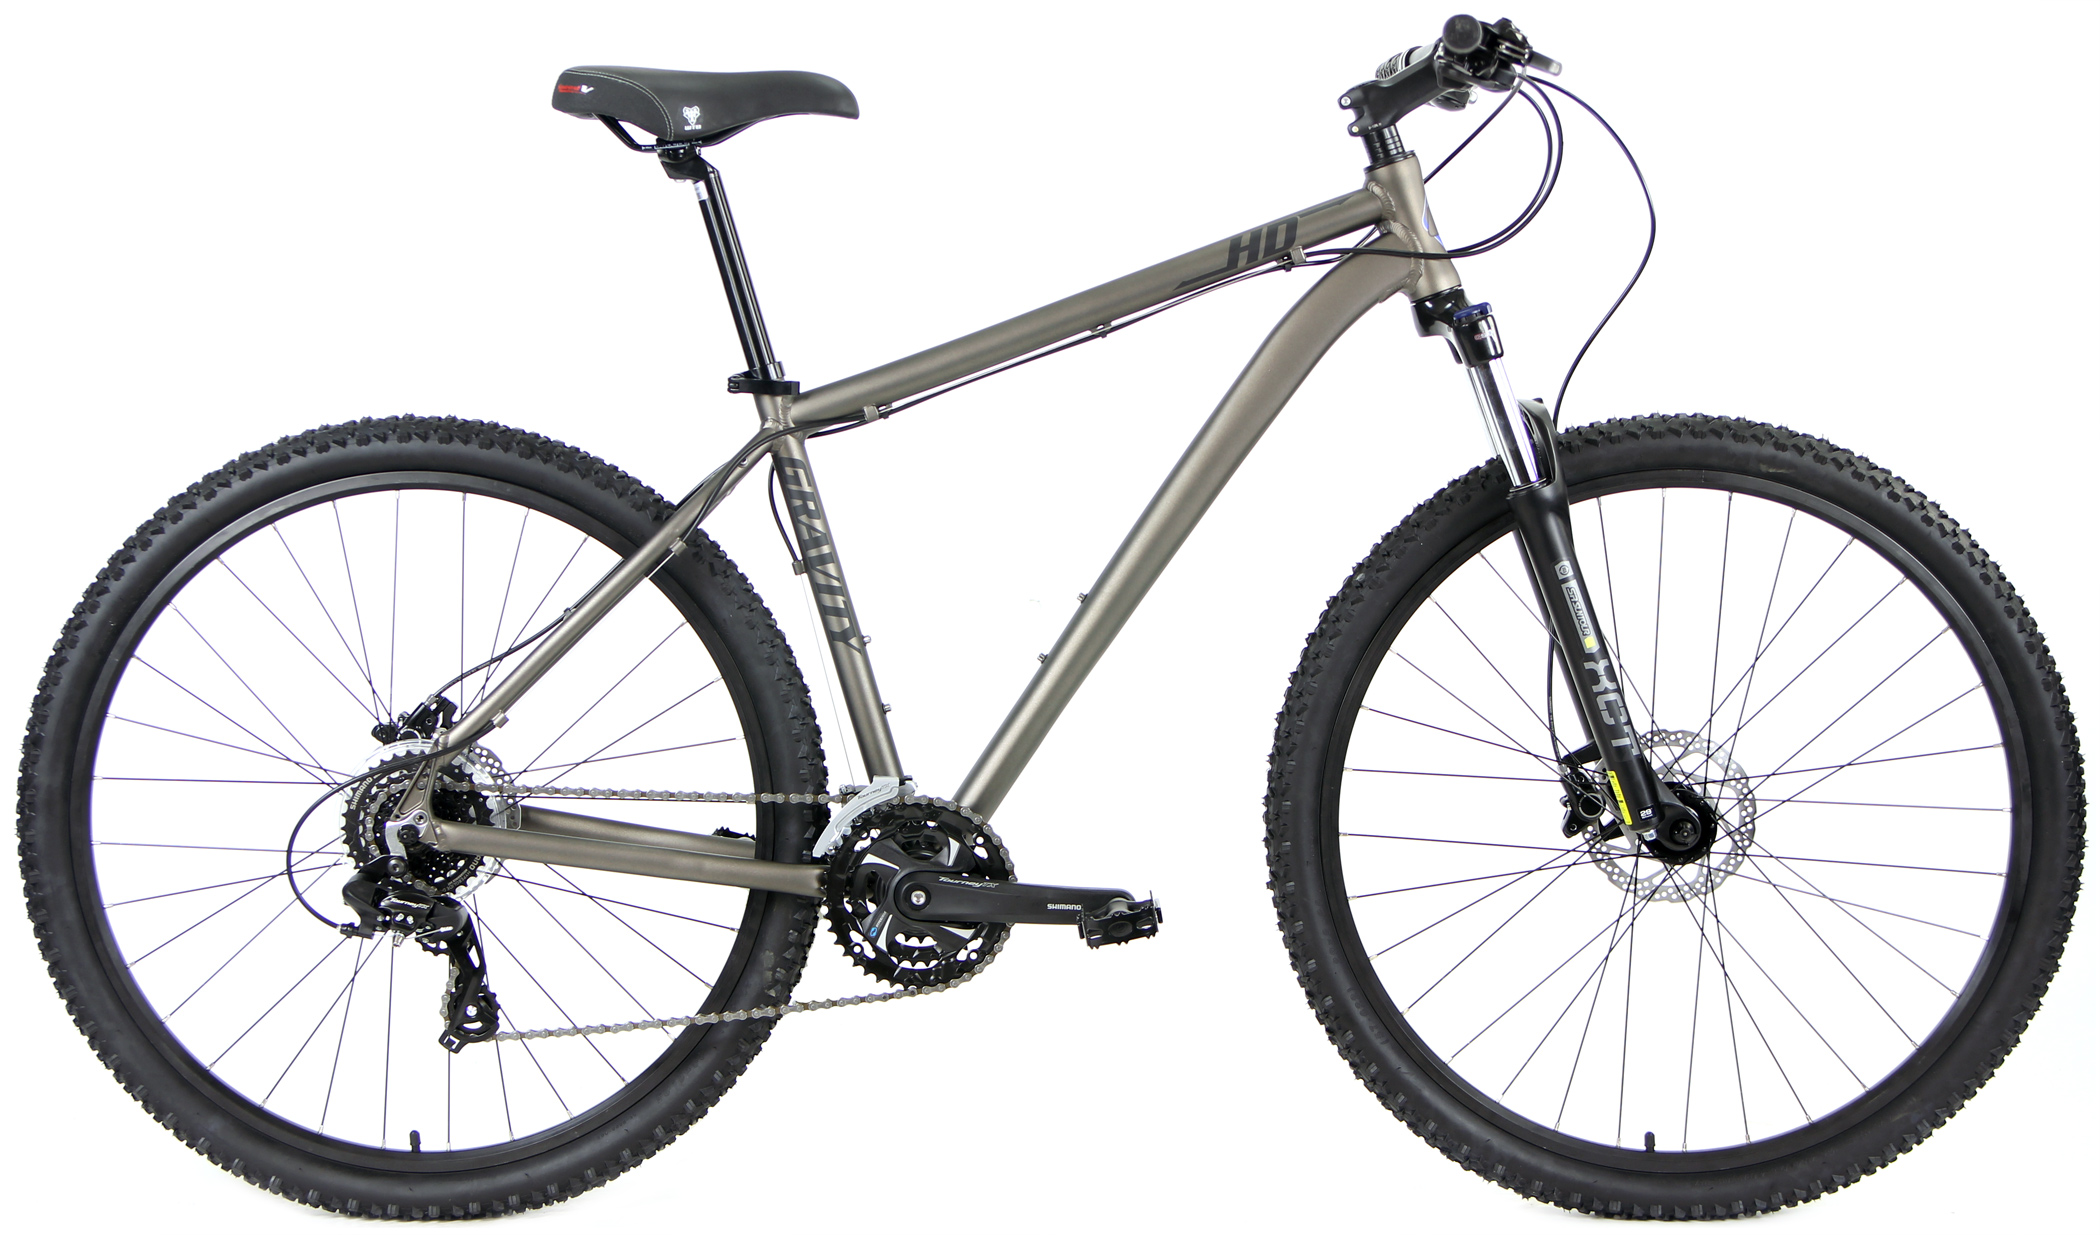 Bikes Gravity HD Comp Long Travel Fork Hydraulic Disc Brakes 29 or 27.5 inch wheels Image